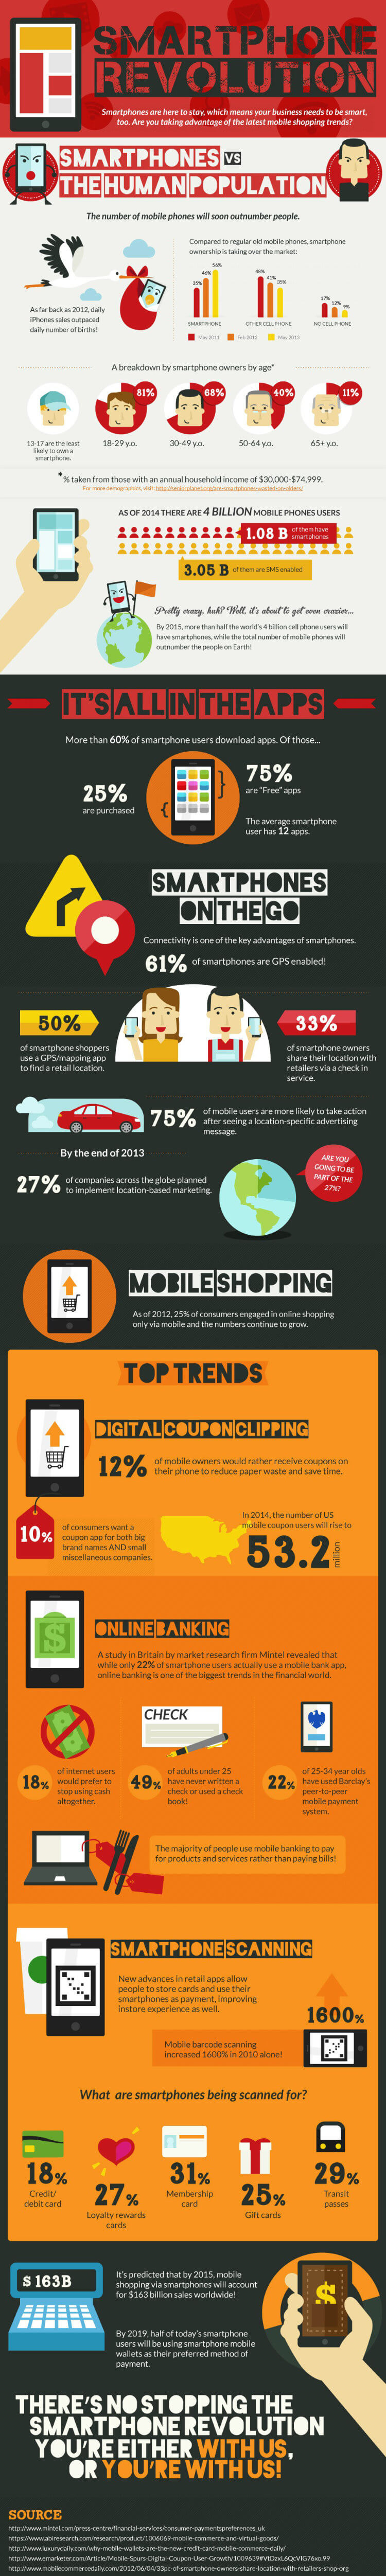 Smartphone Revolution A Retailers Guide to the New Mobile Market